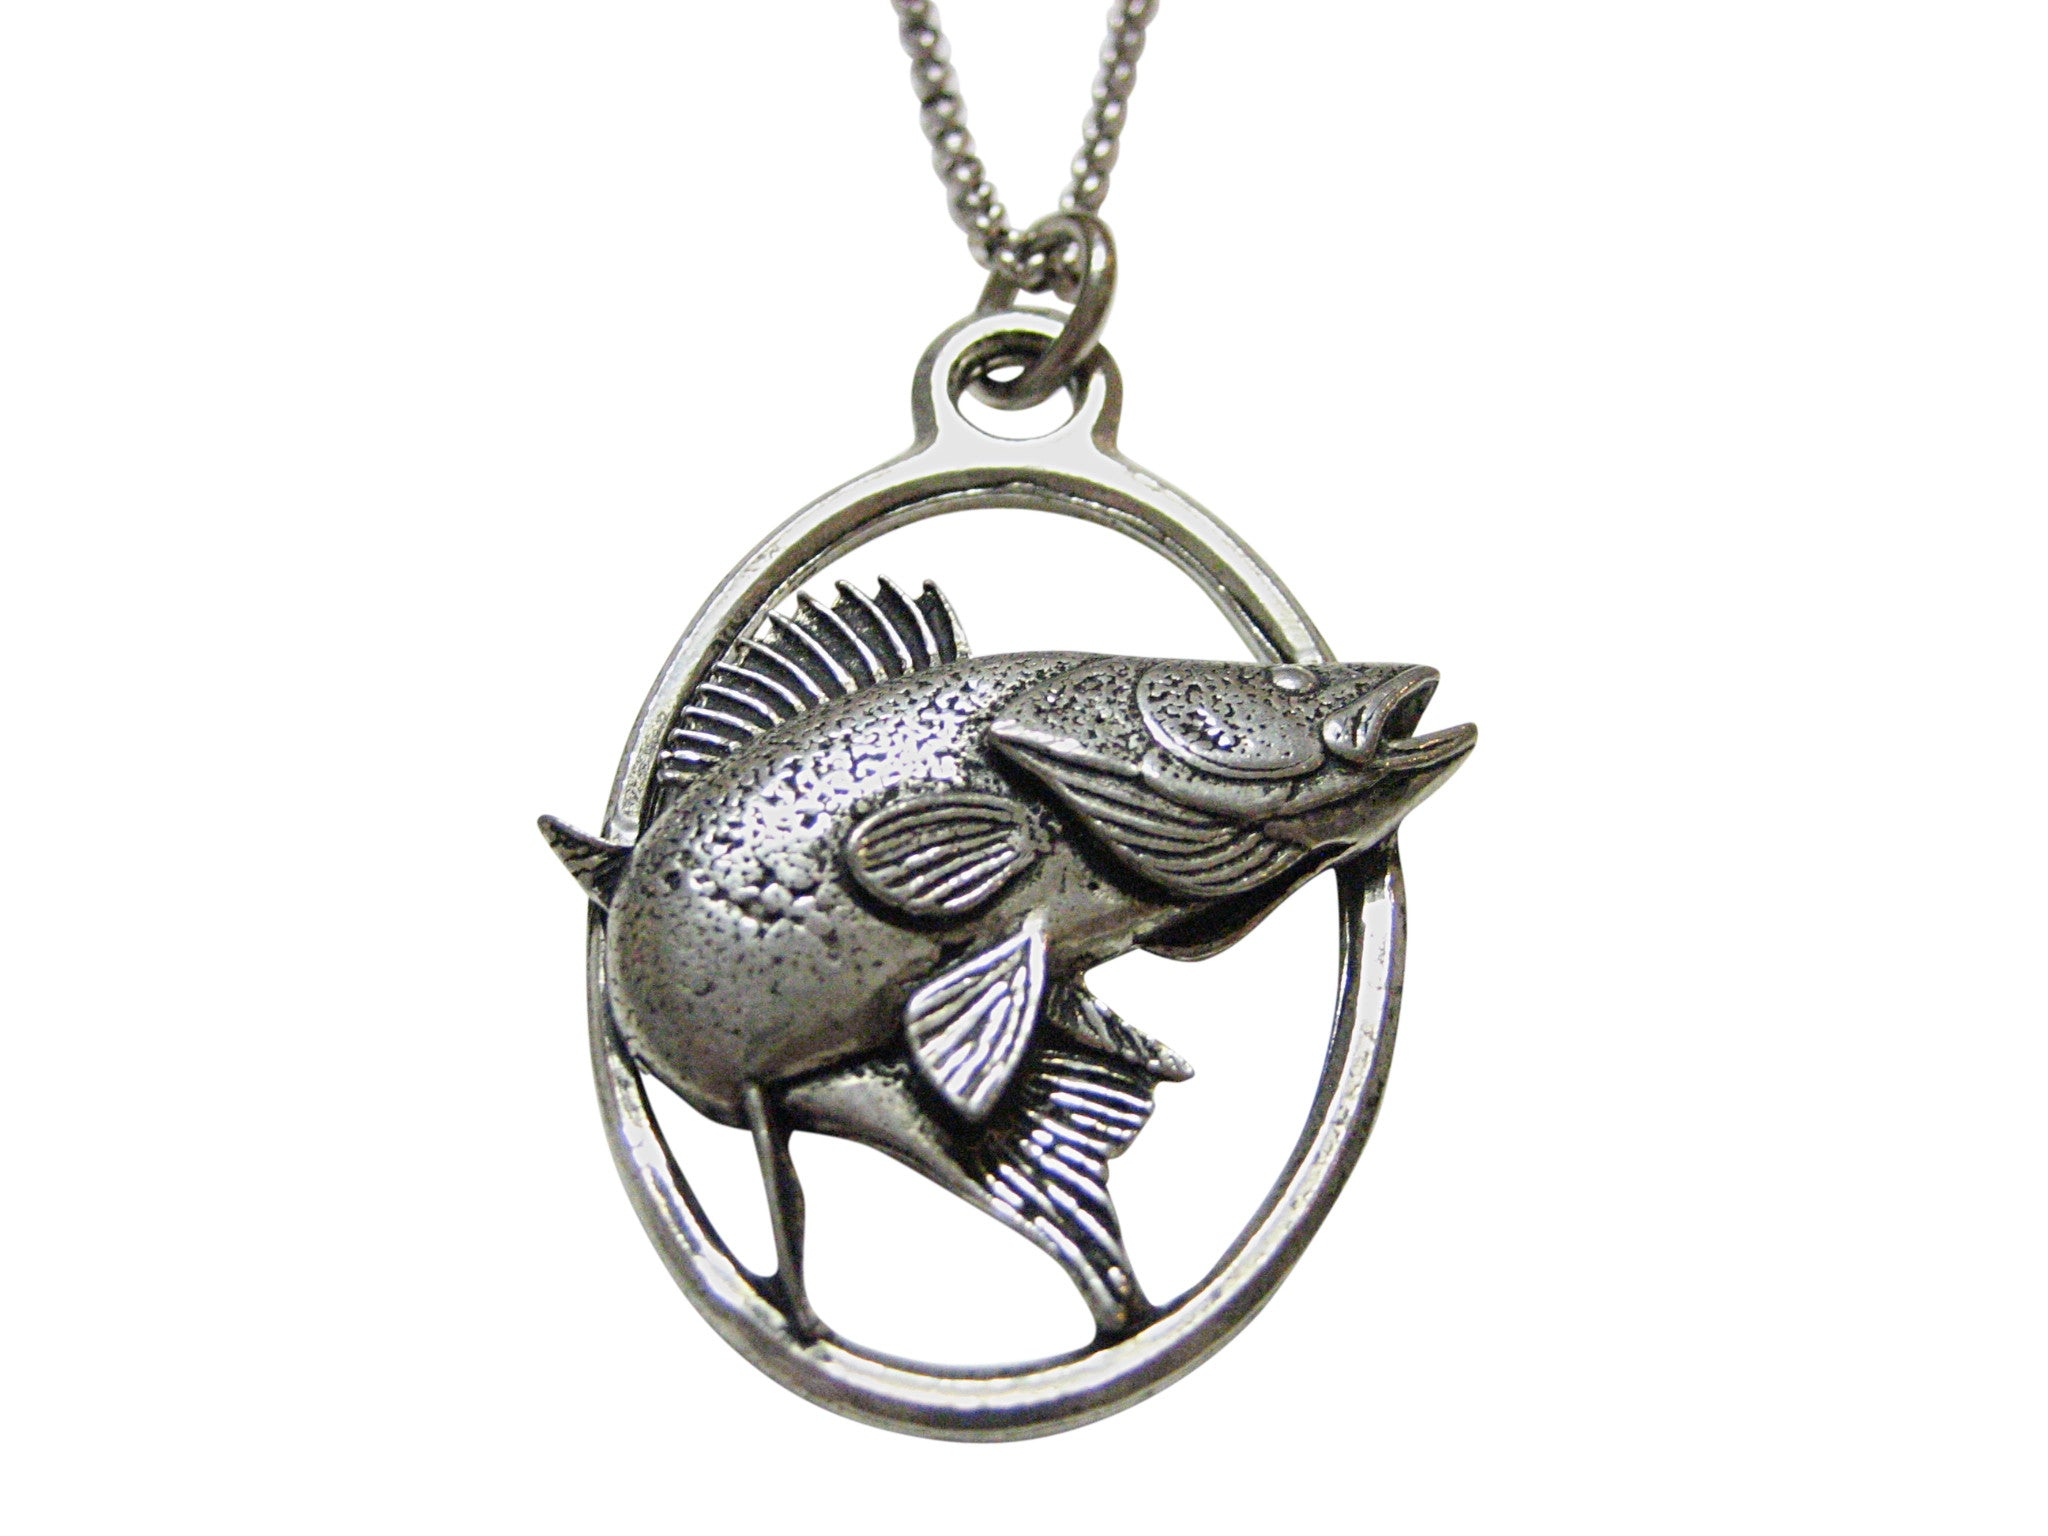 Zander Walleye Fish Large Oval Pendant Necklace